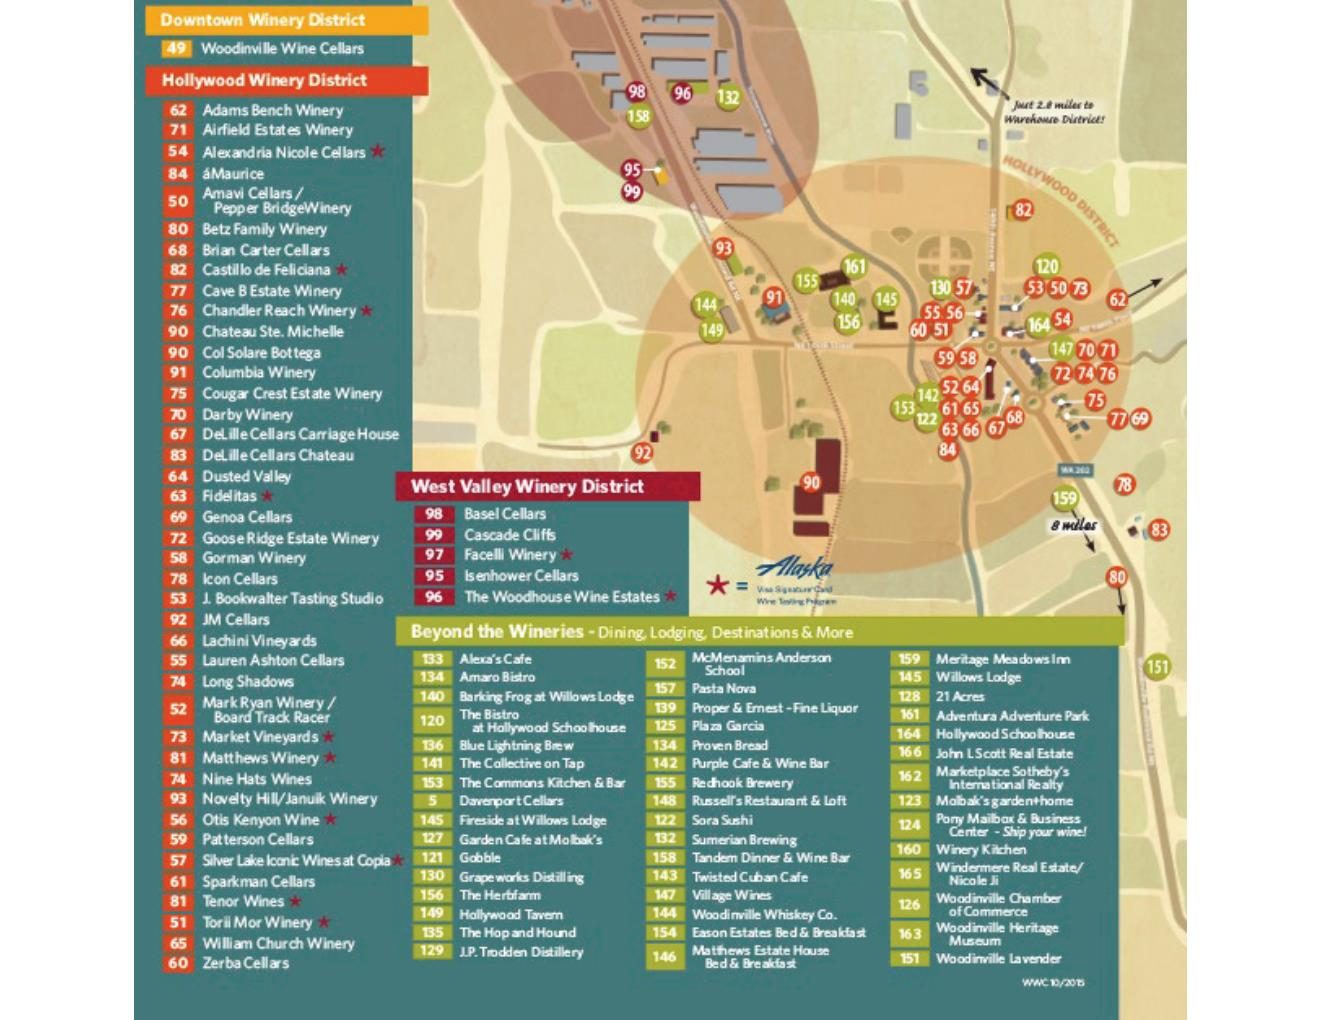 woodinville-wine-country-touring-map-hollywood-west-valley-downtown-districts